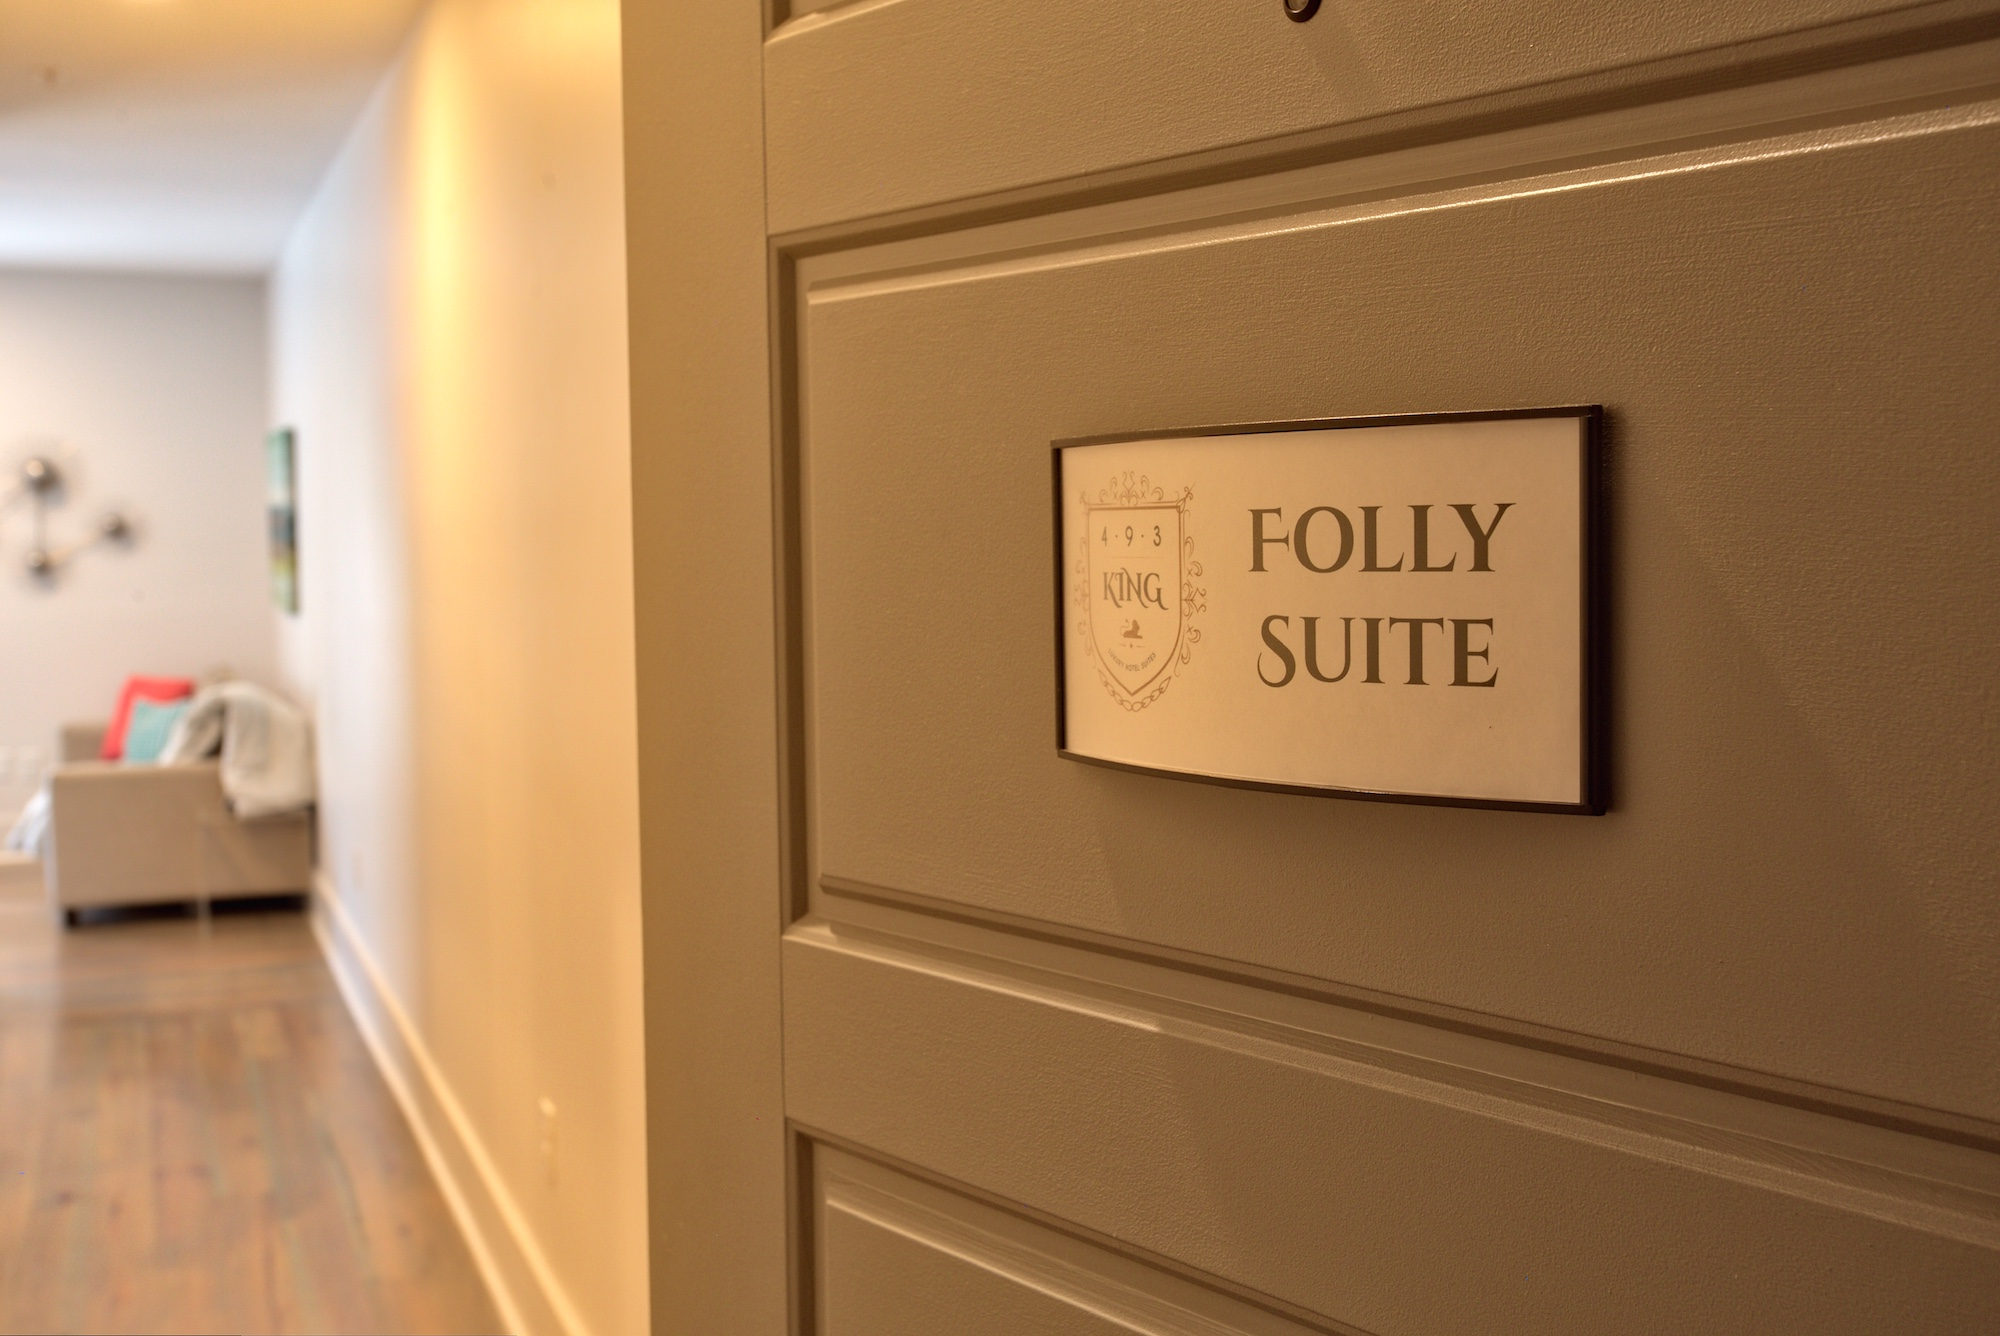 Suite on King Street Charleston SC Vacation Rental The Folly Suite2.jpeg